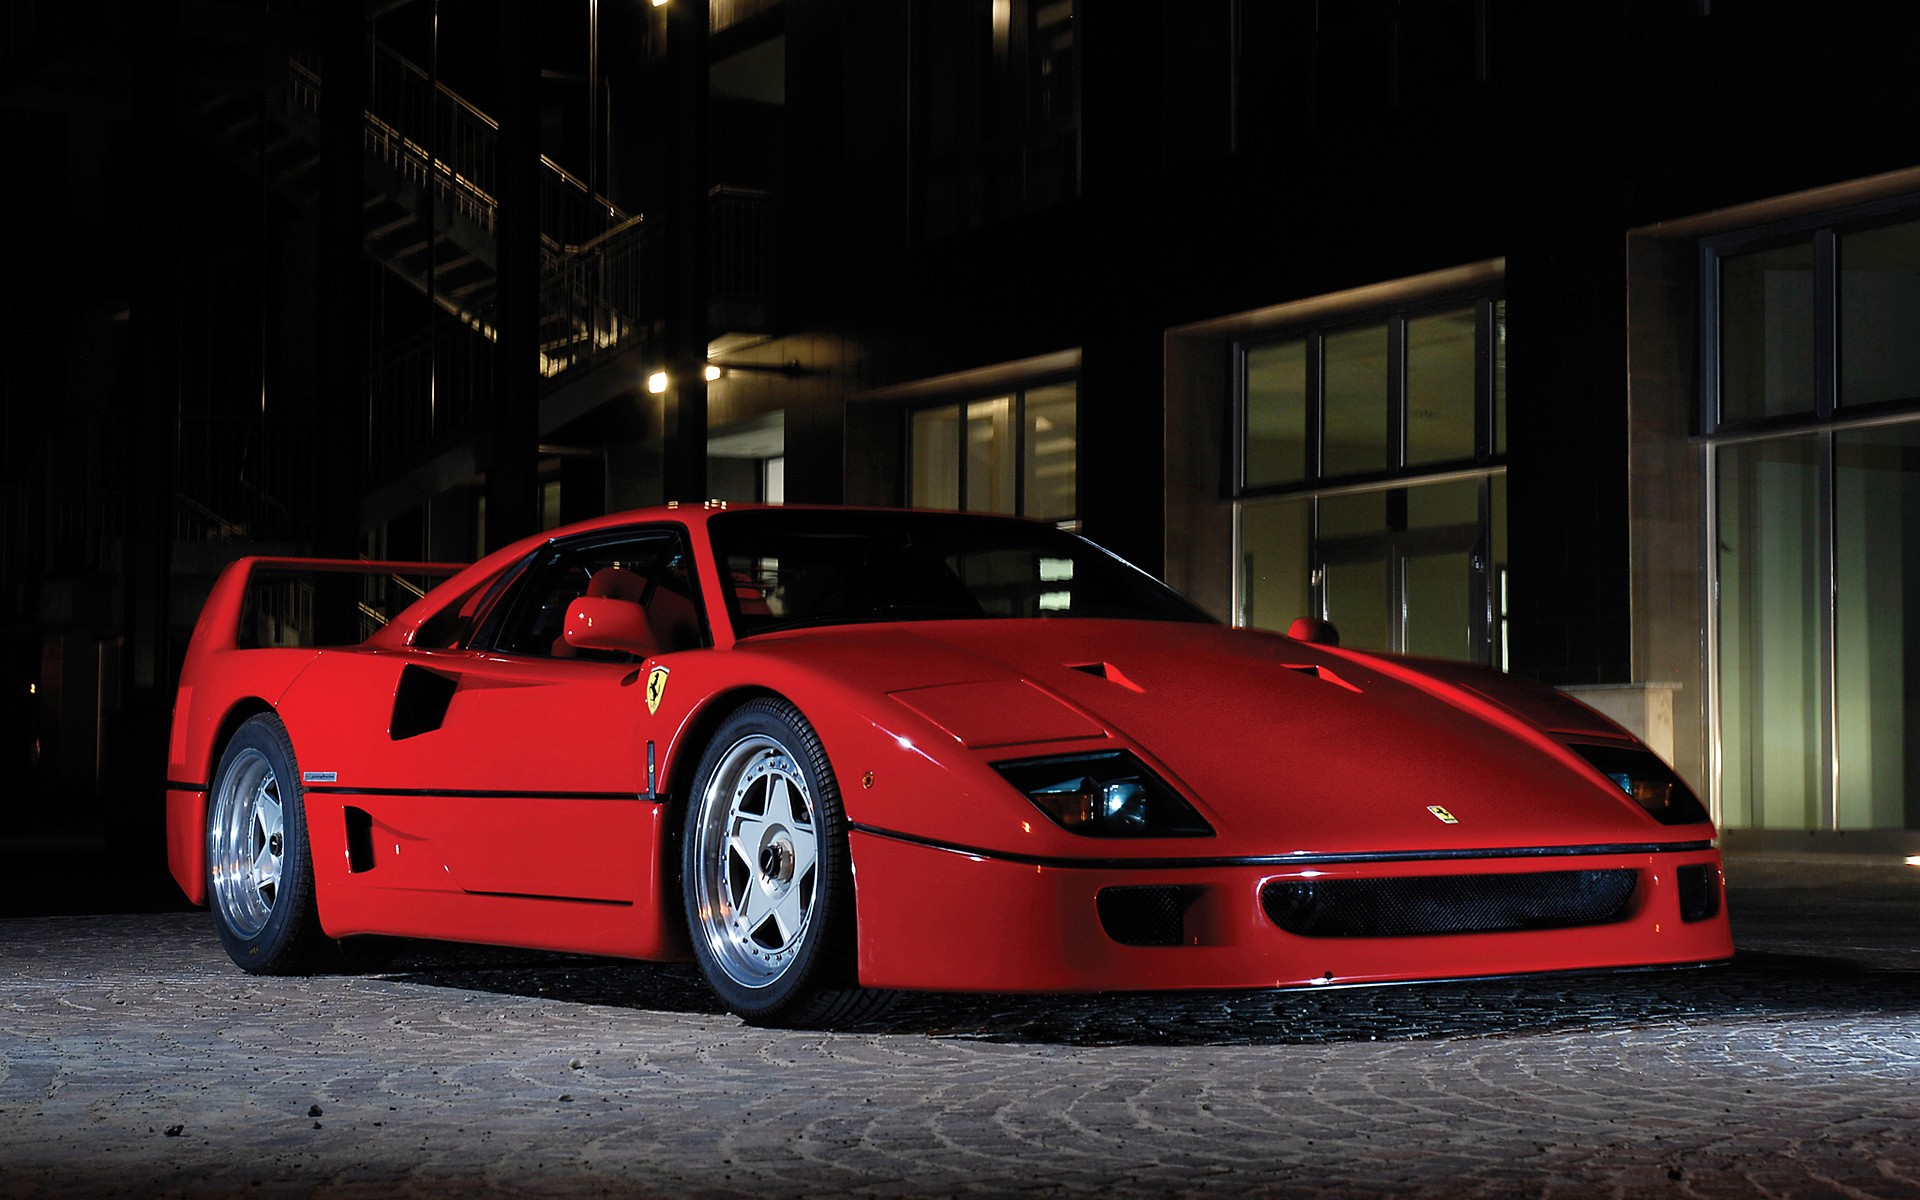 3d Wallpaper Hd 1080p Download Car Ferrari F40 Wallpapers Hd Desktop And Mobile